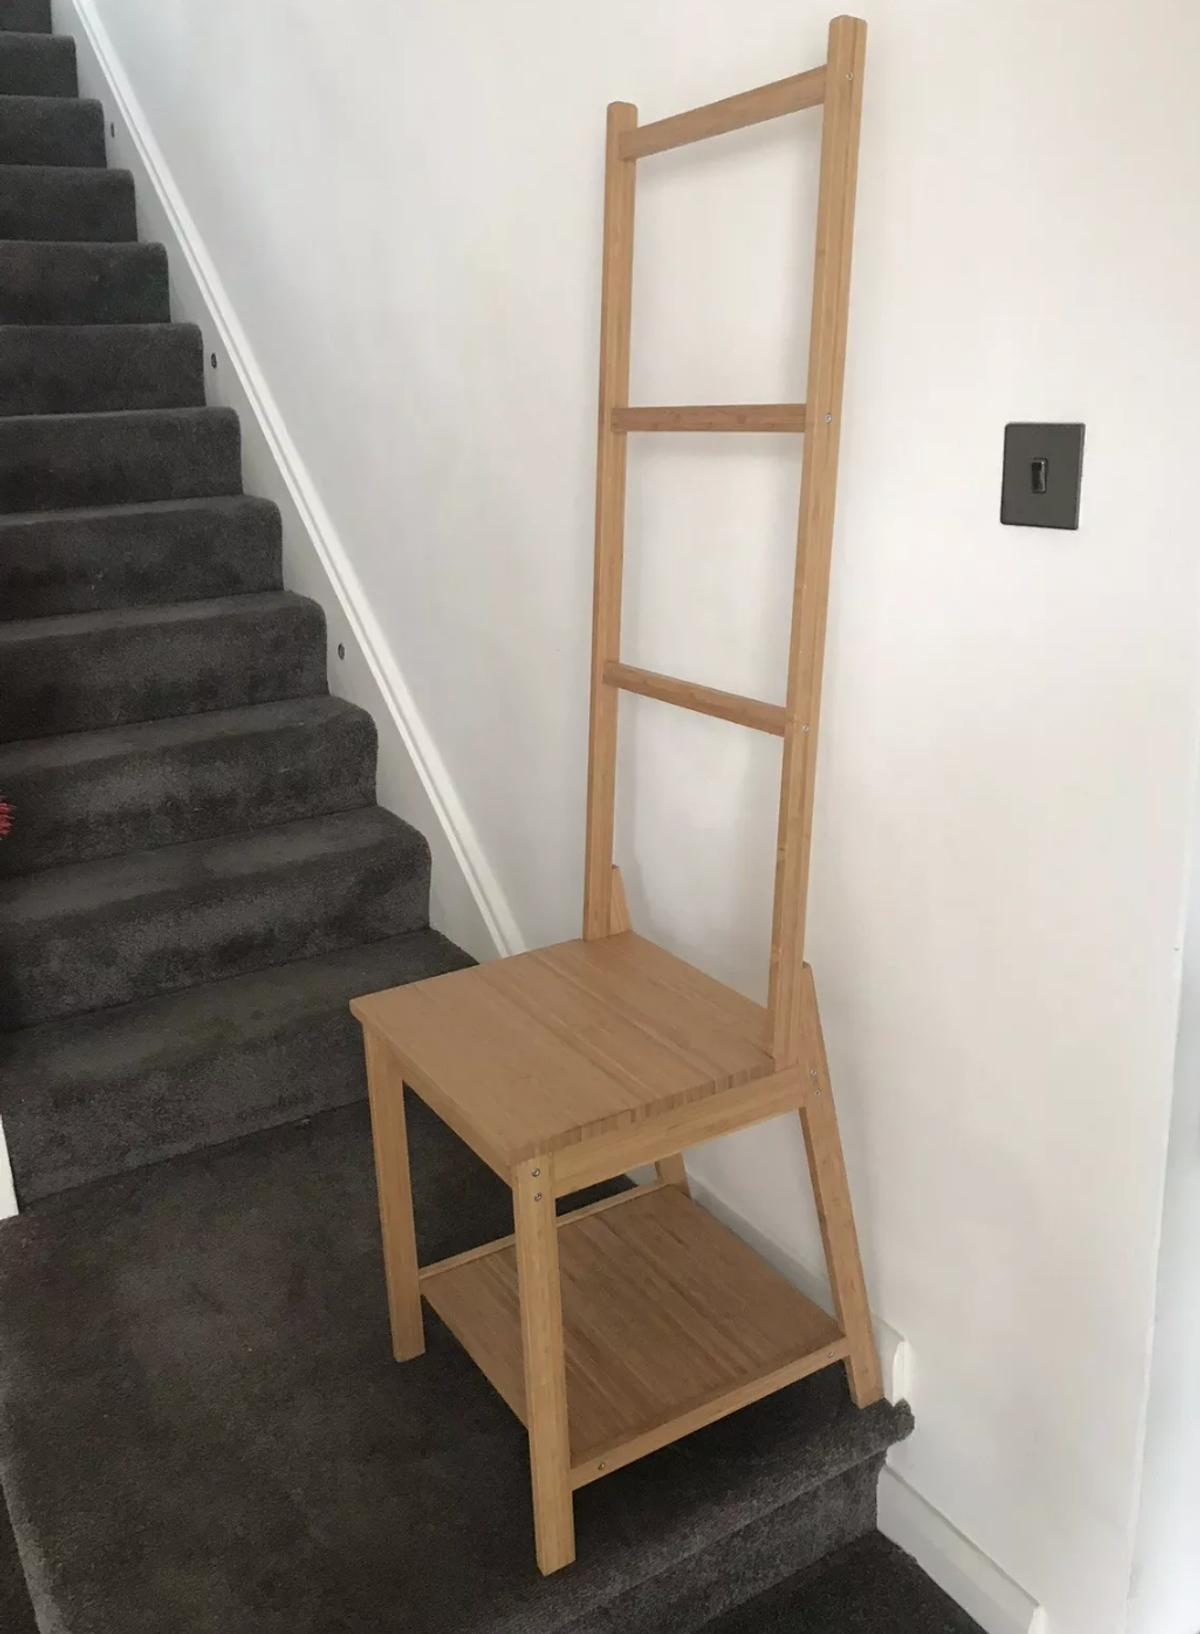 Ikea Towel Rail Ladder Chair In Dl5 Aycliffe For 15 00 For Sale Shpock